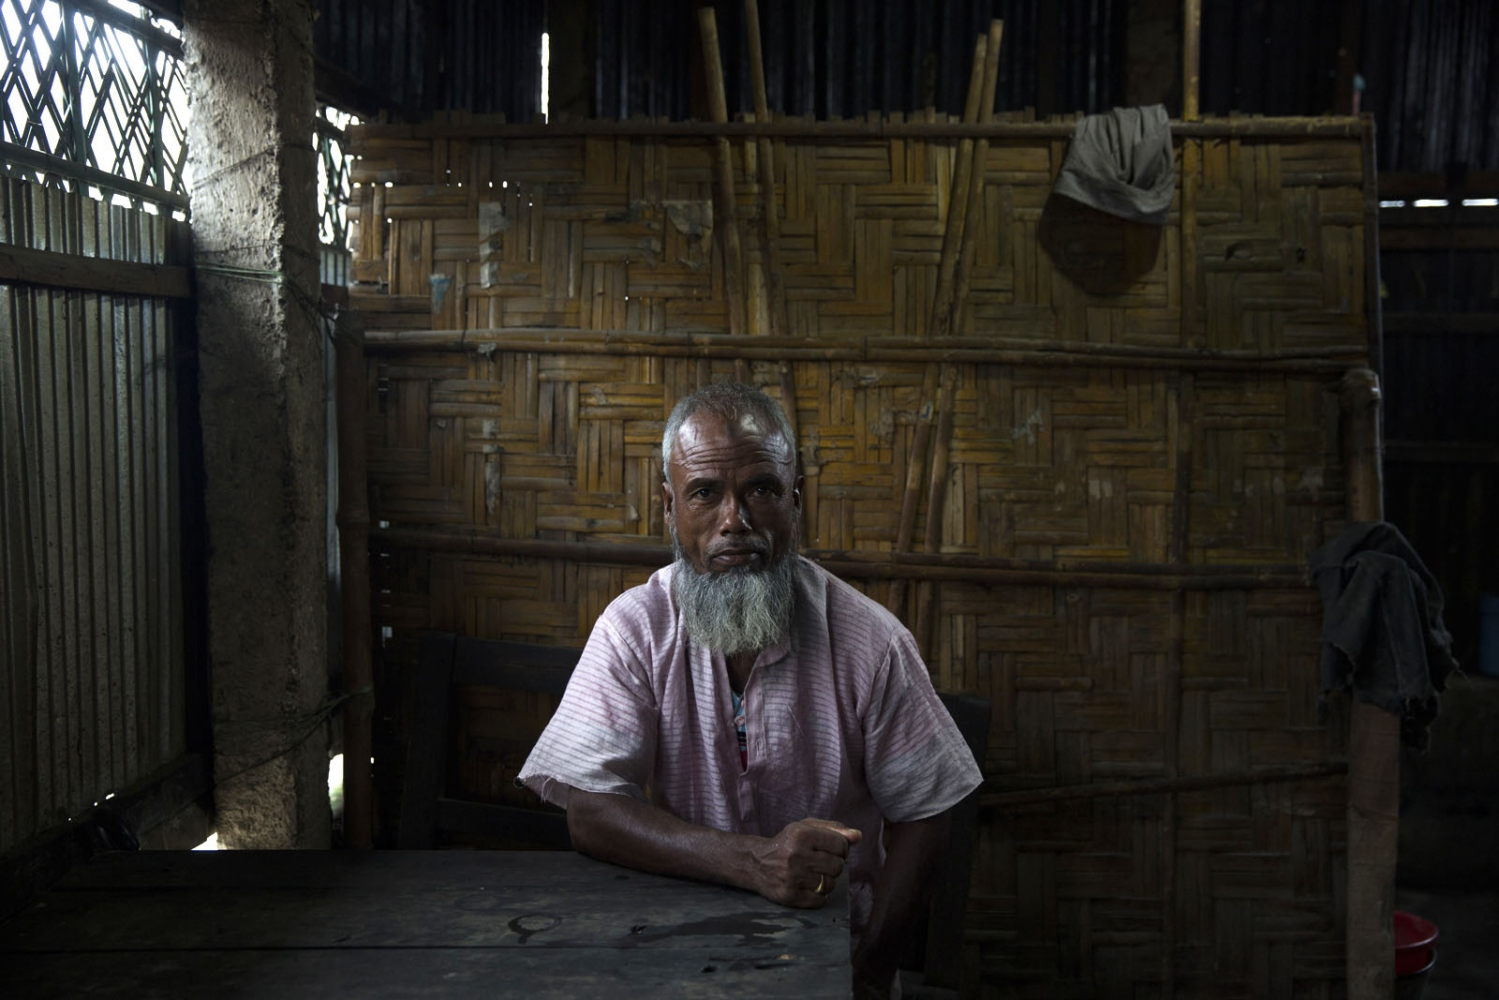 A Bangladeshi man sits in a shop in the market of a small town that sits between enclaves. There is very little distinction between land inside and outside an enclave but all the locals know know exactly where the boundaries lie.